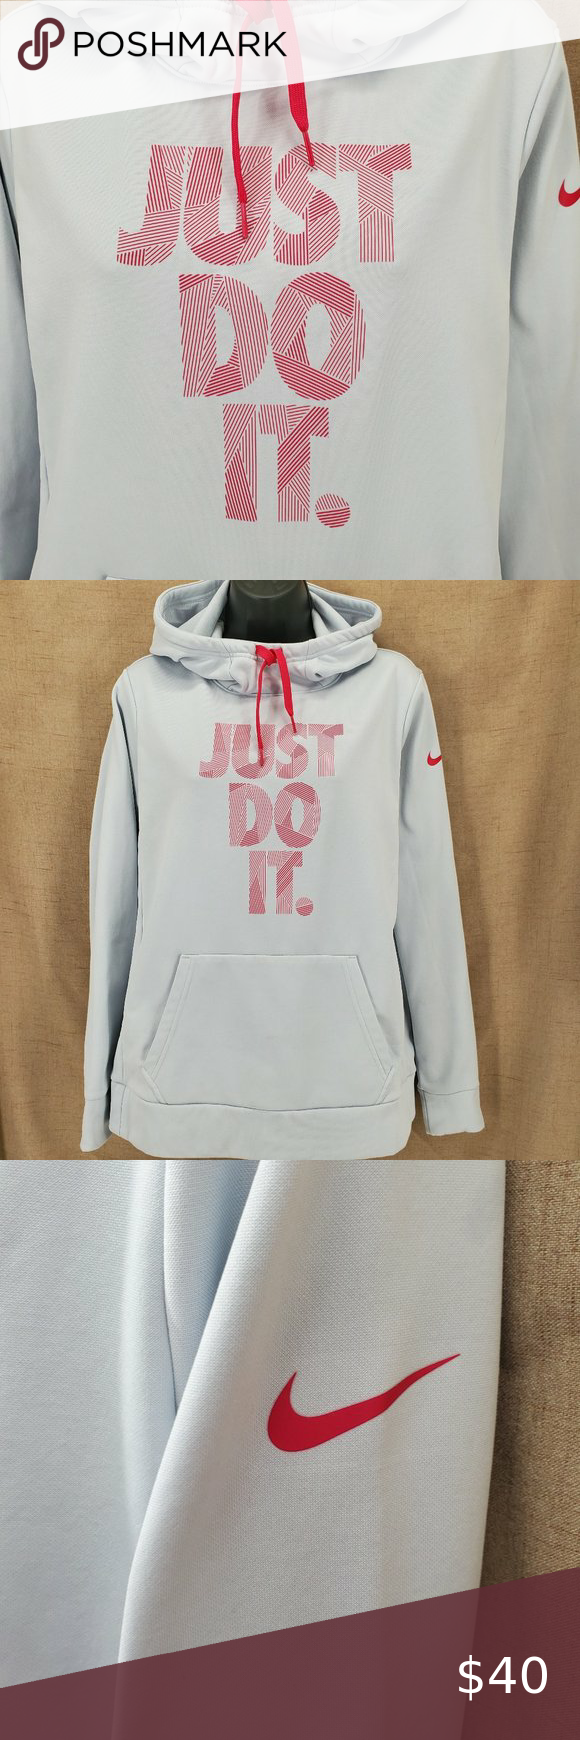 Nike Just Do It Dry Fit Hoodie Lt. Gray/Pink Sz M in 2020